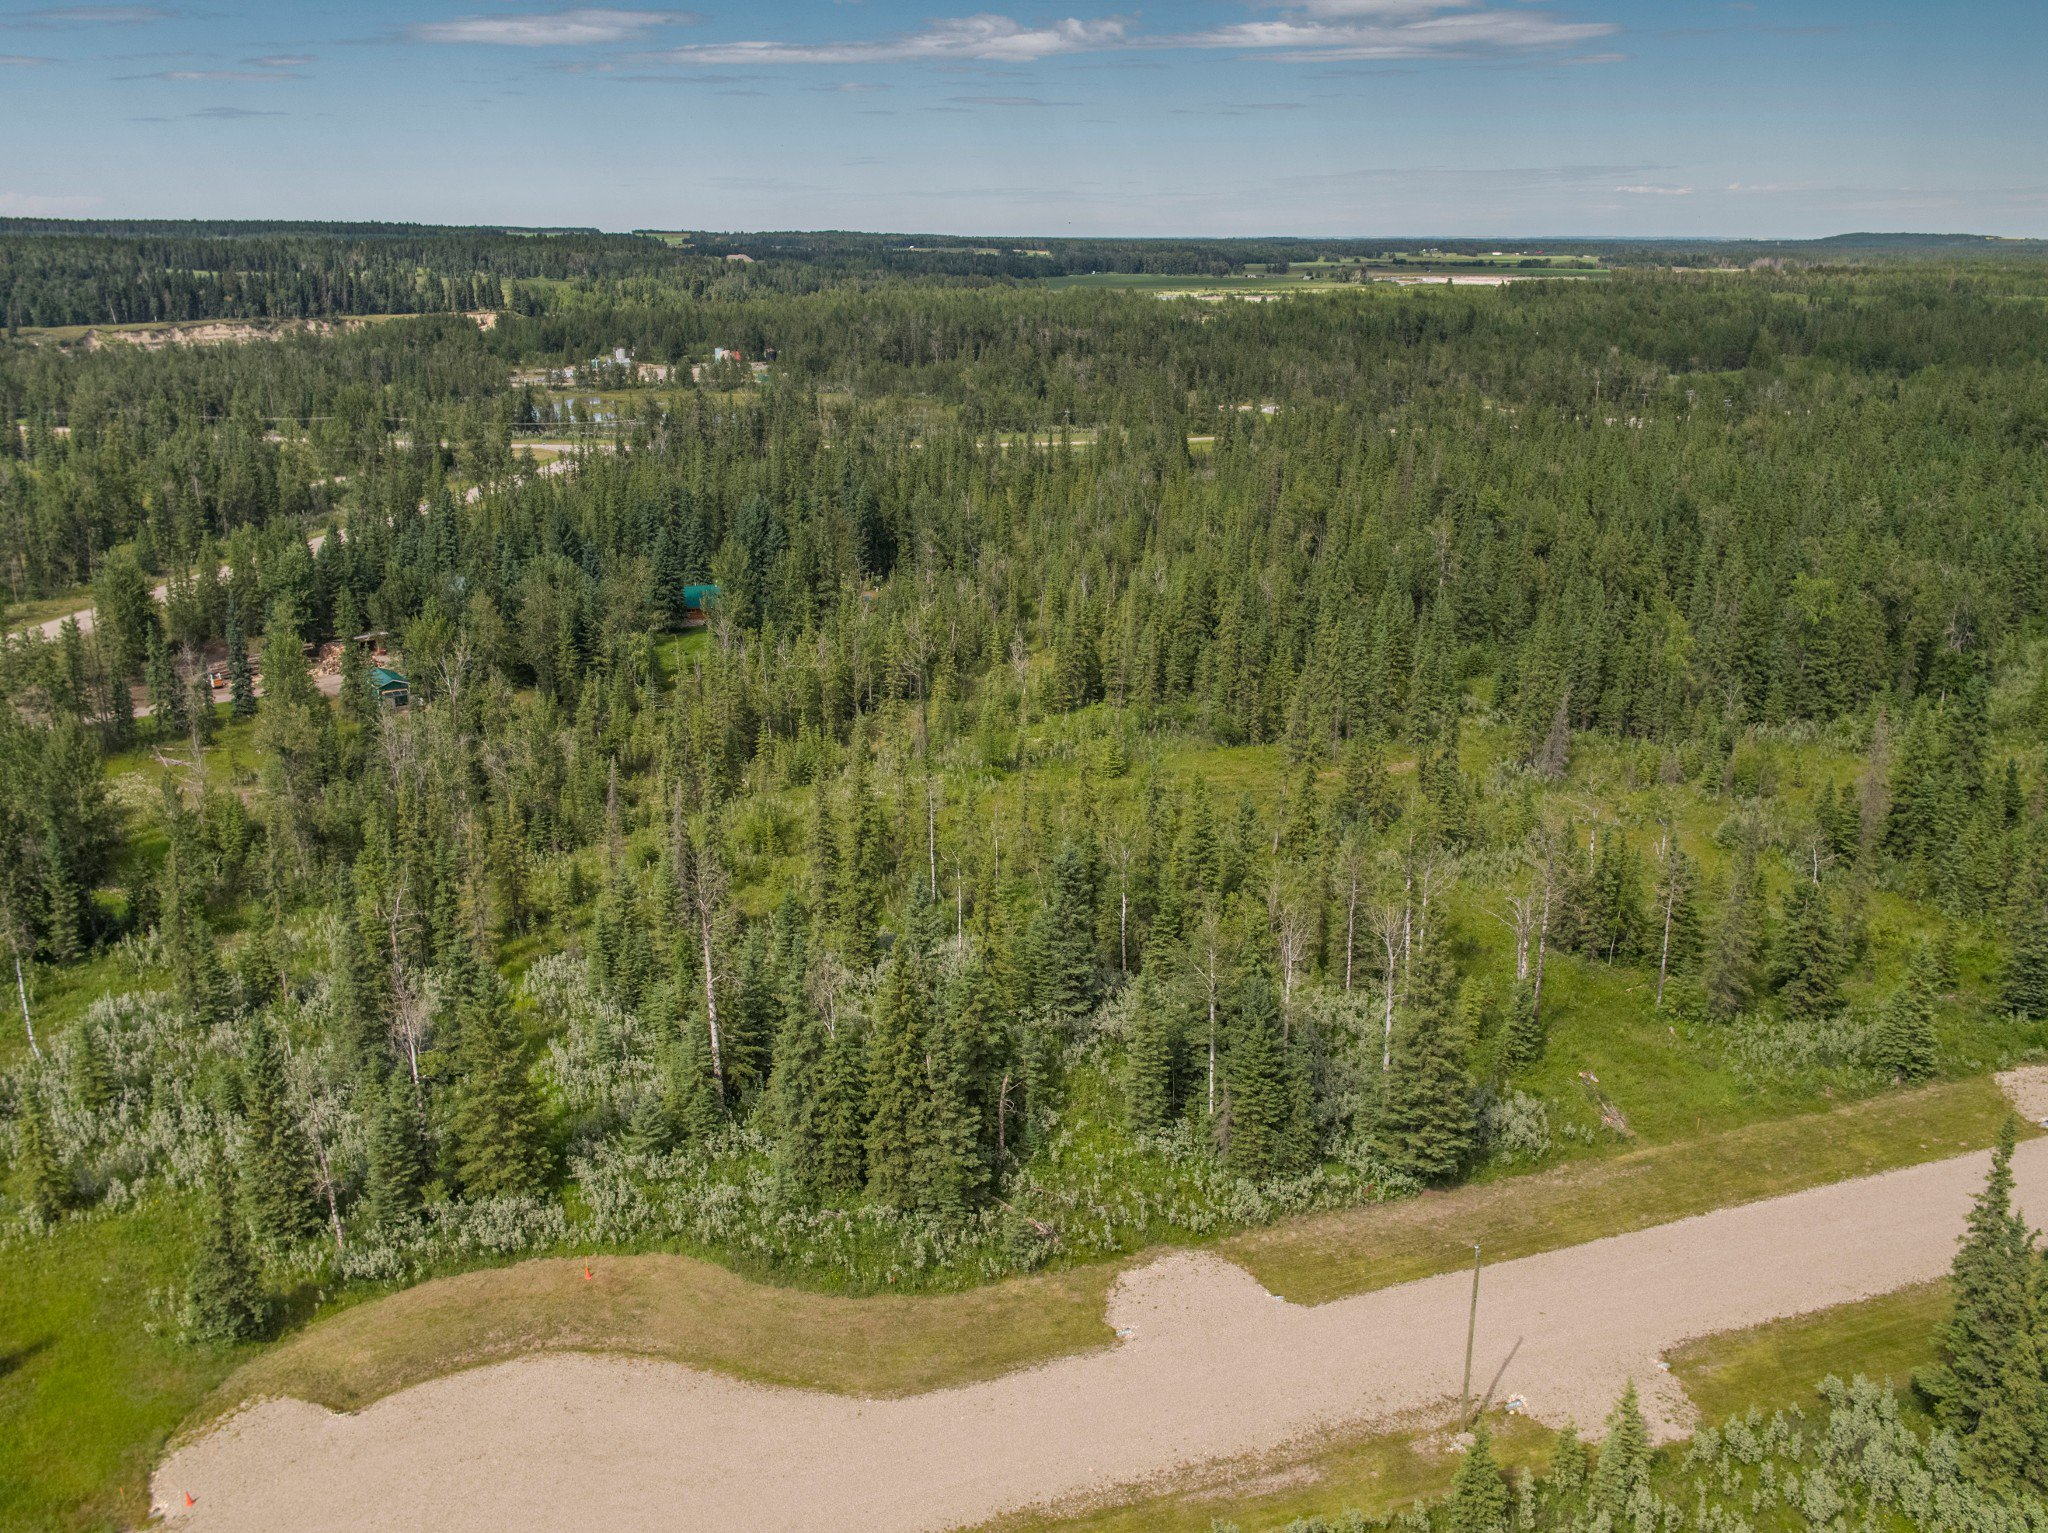 Main Photo: 16-34364 RANGE ROAD 42 in : Rural Mountain View County Land for sale (Mountain View)